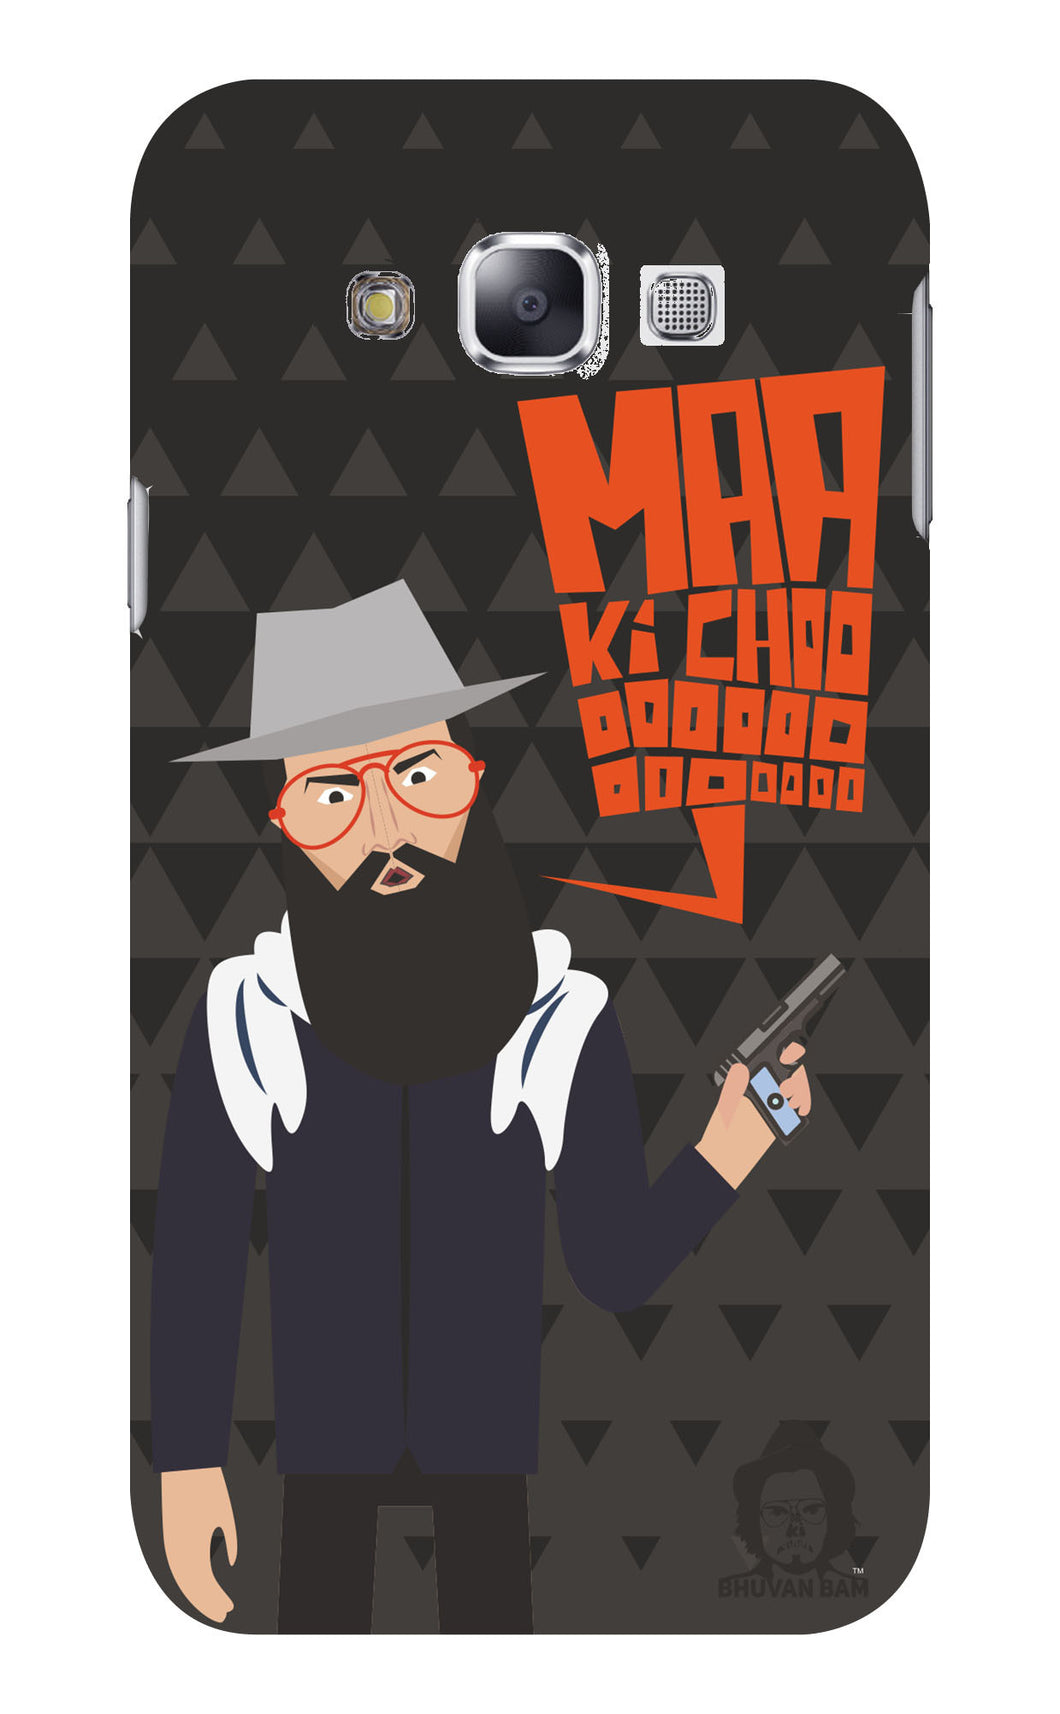 Papa Maaki*** Edition for Samsung Galaxy E7